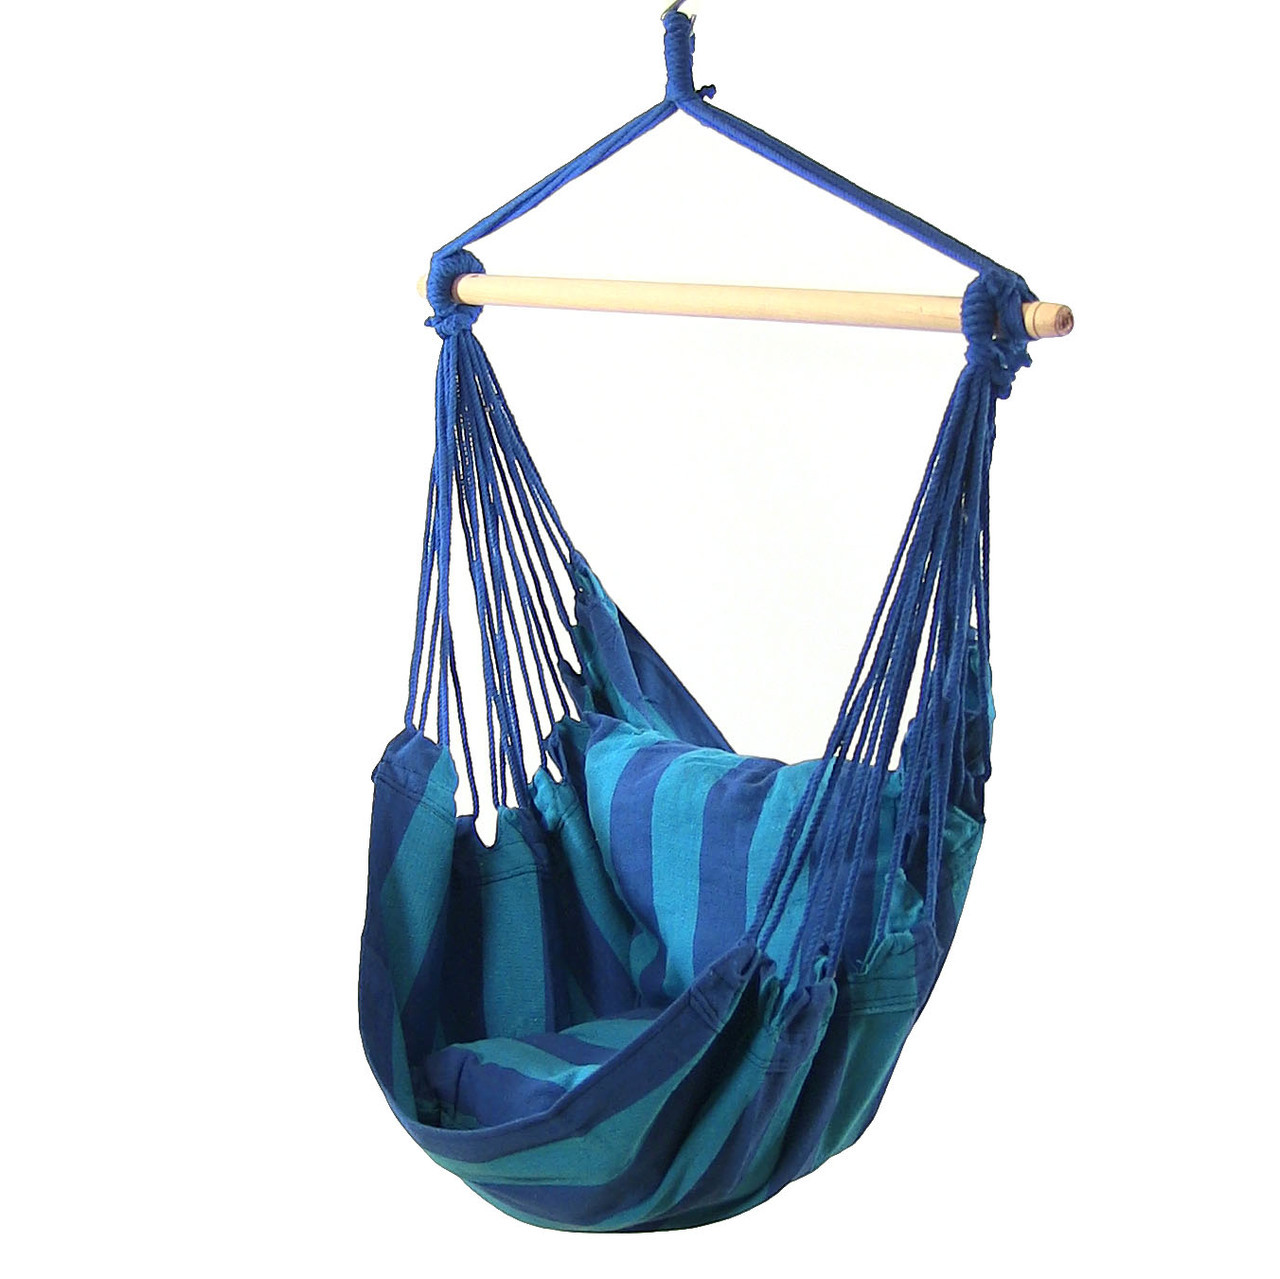 Hanging Hammock Chair Swing For Indoor Outdoor Use Max